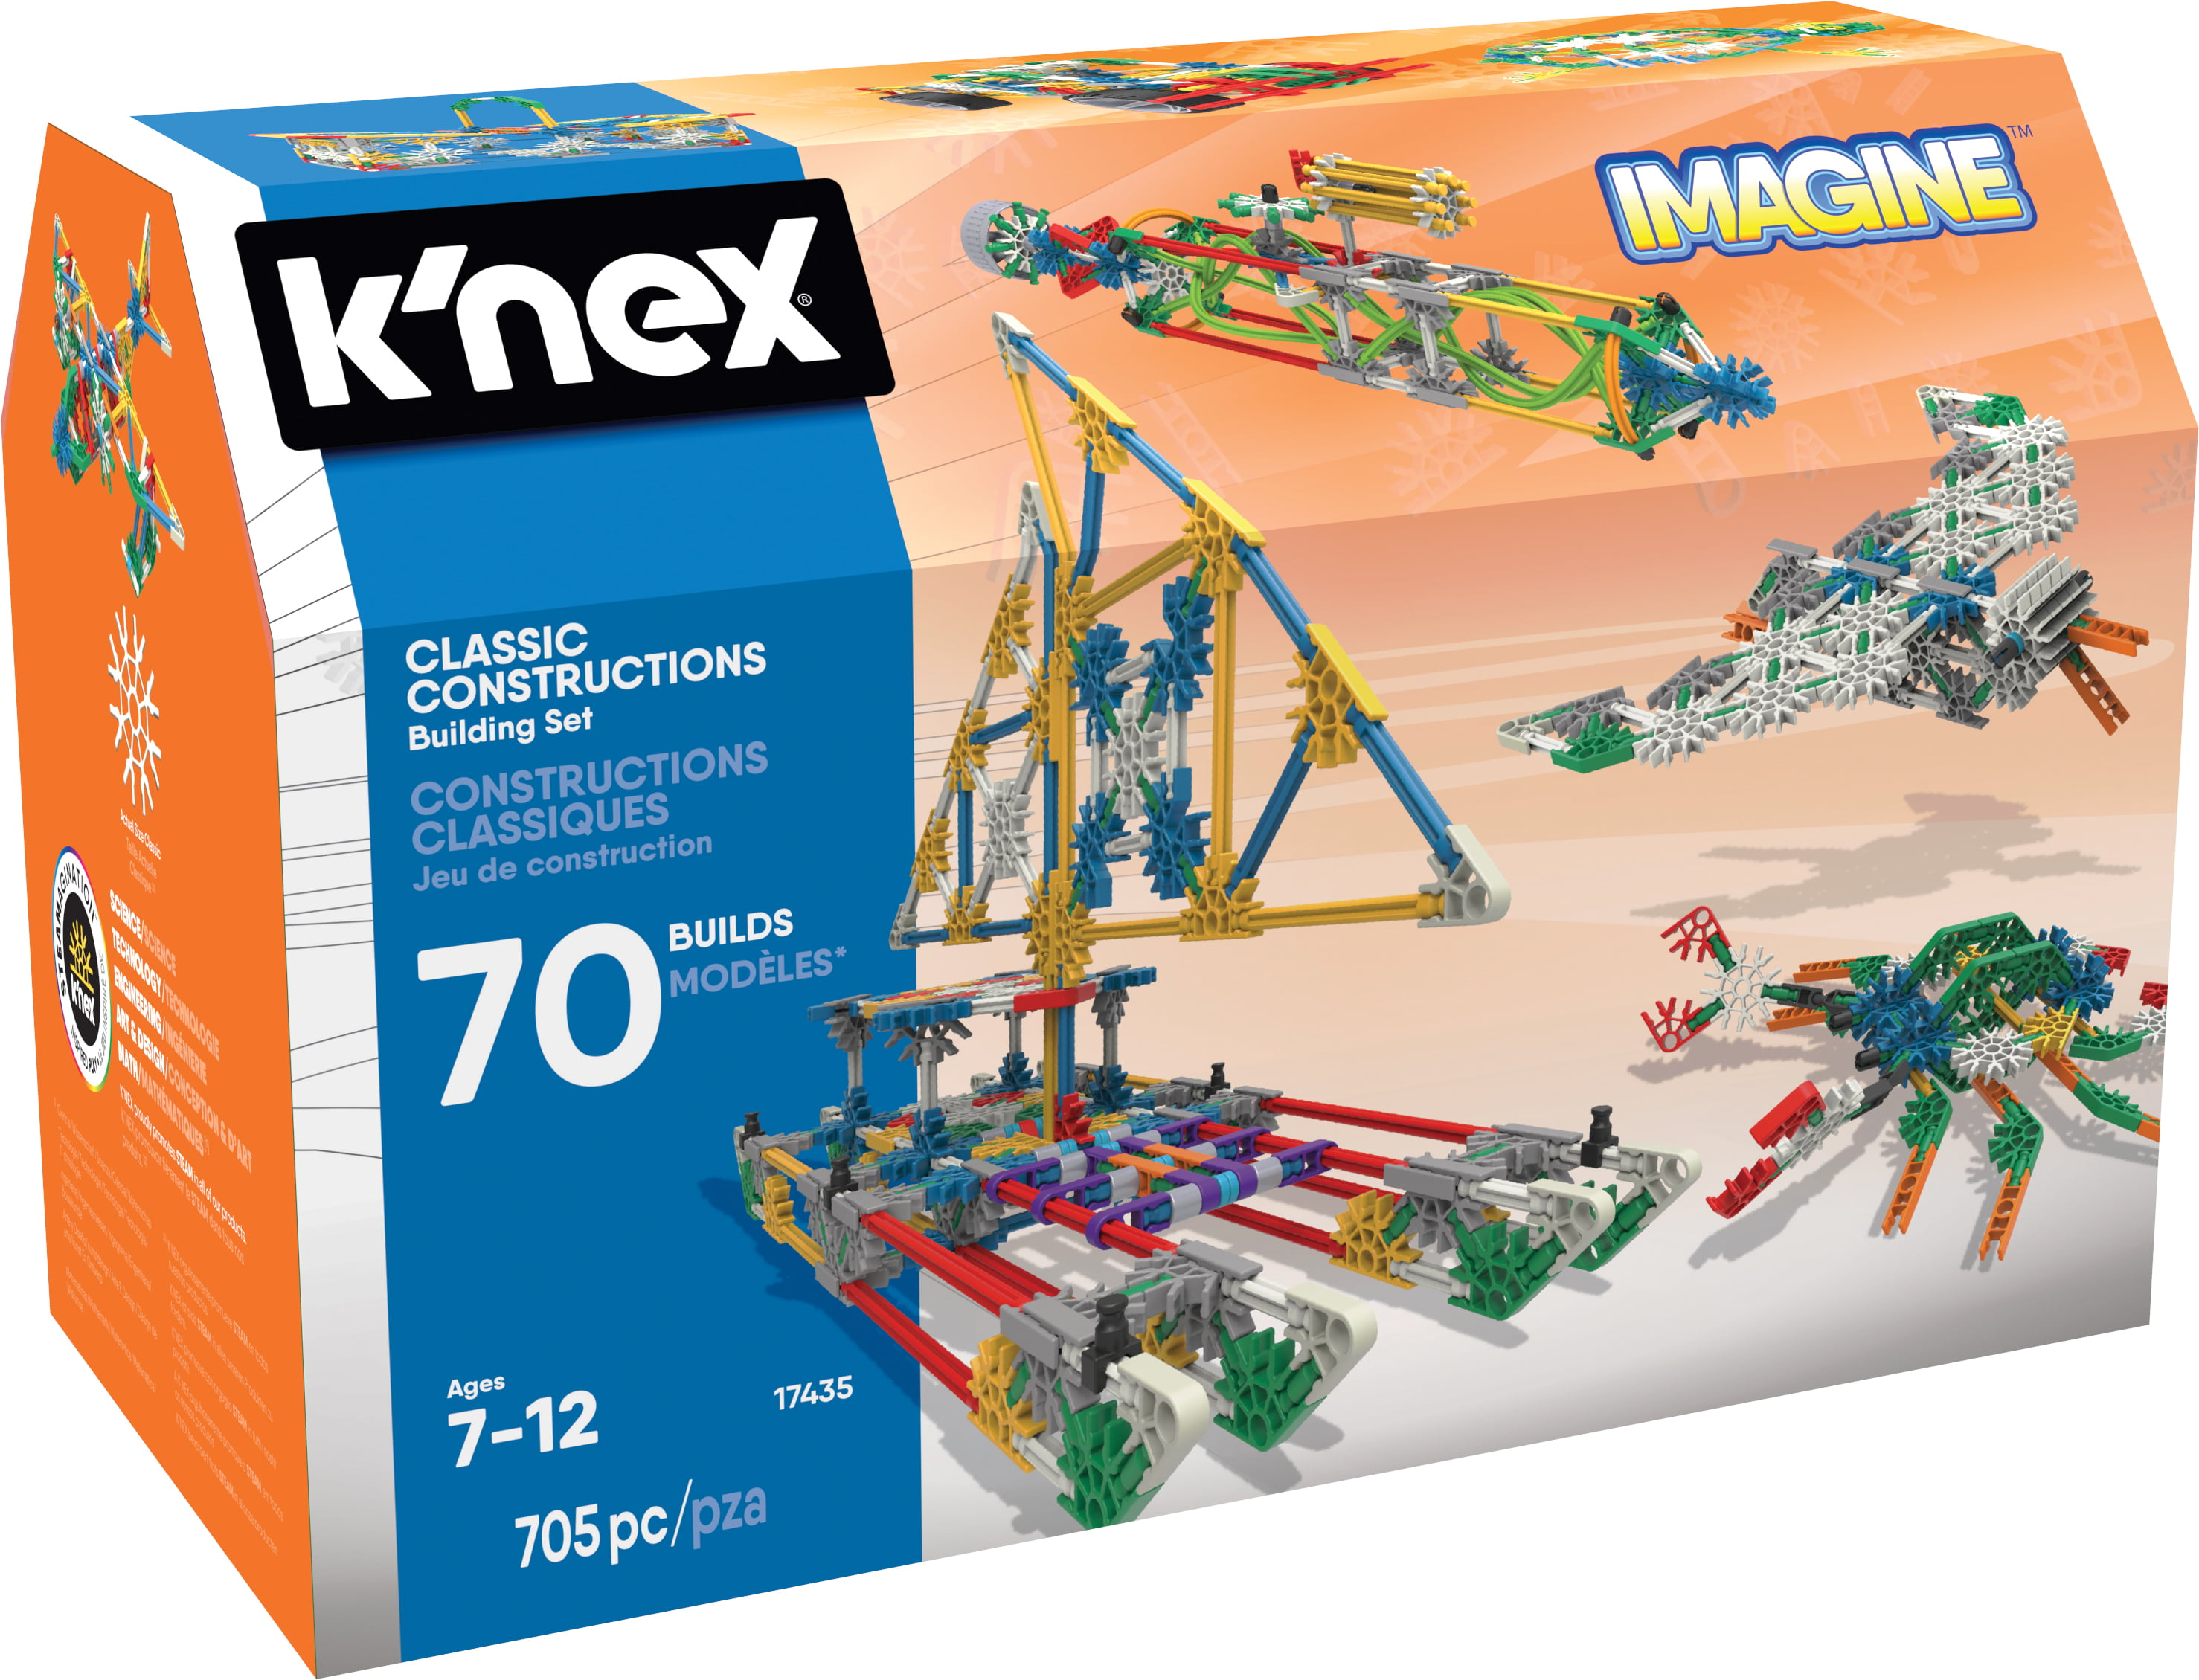 KNEX IMagine Classic Constructions 70 Model Building Set by K'NEX